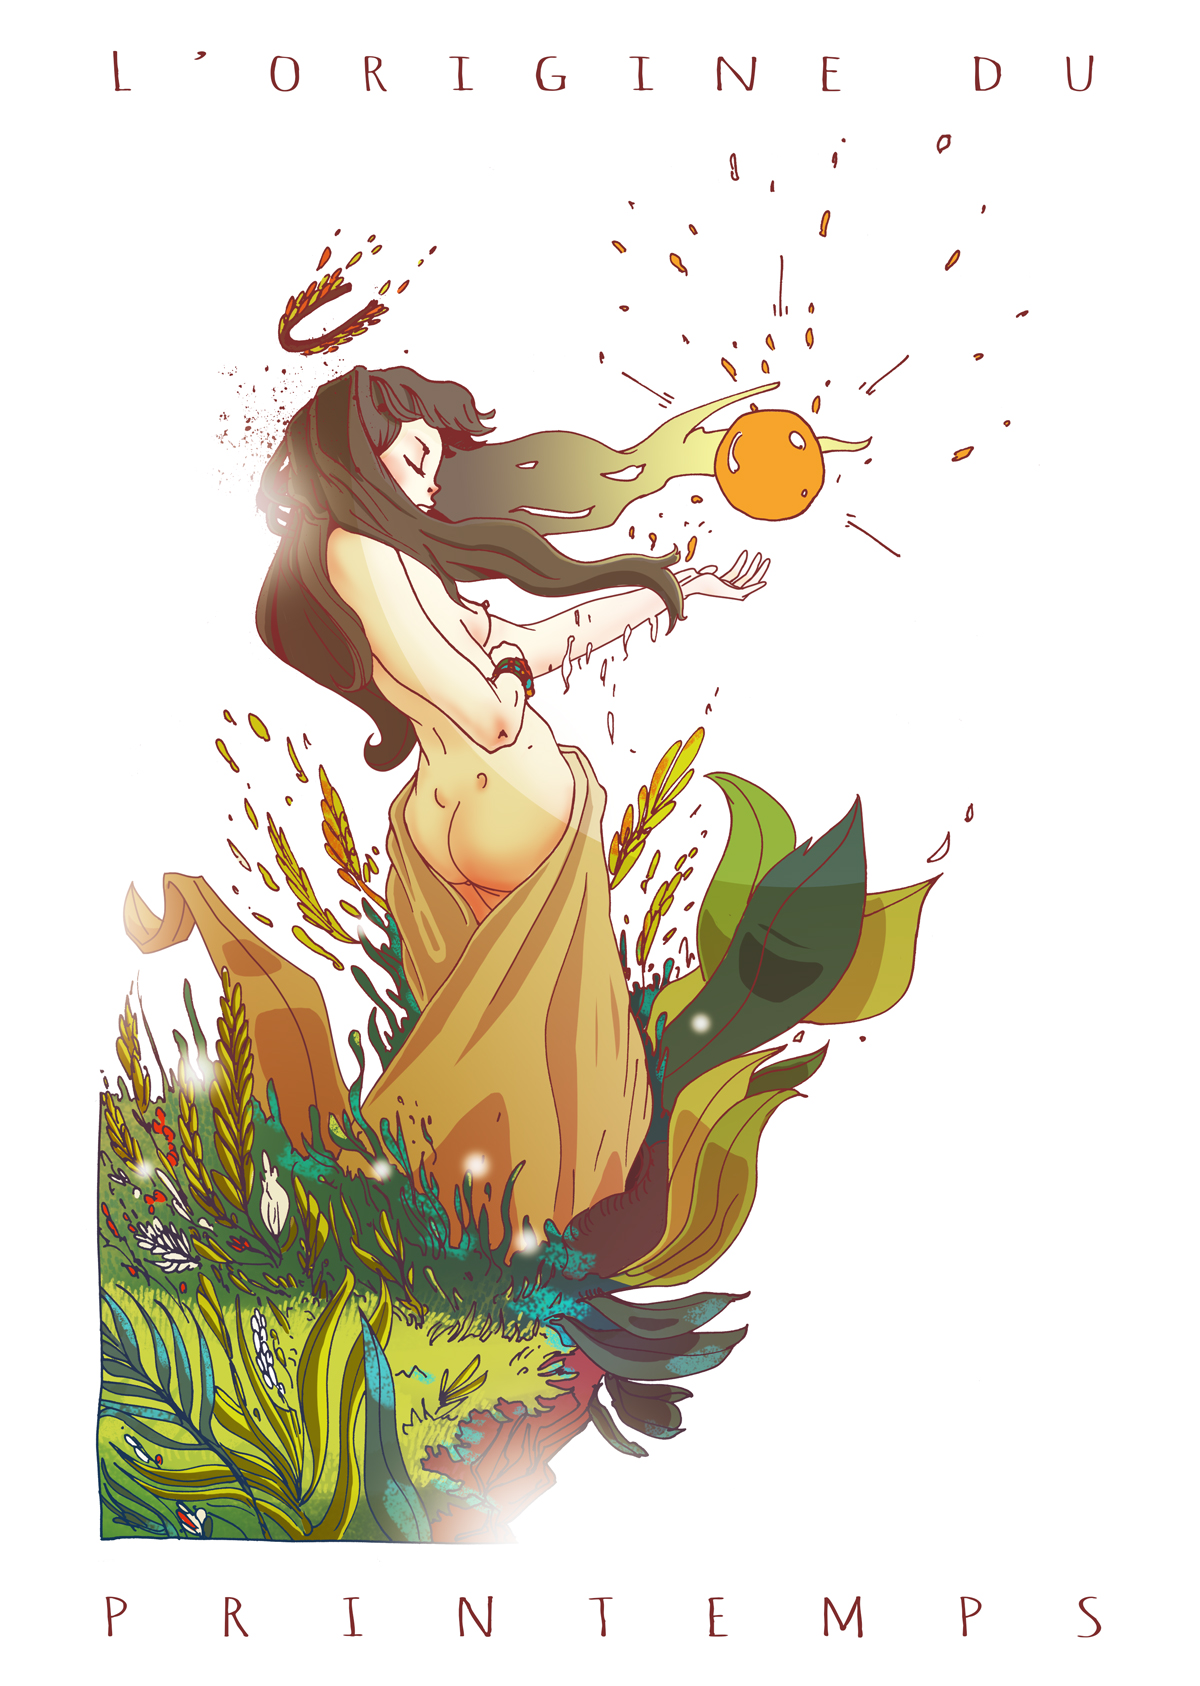 L'origine du printemps - illustration Romain Laforet